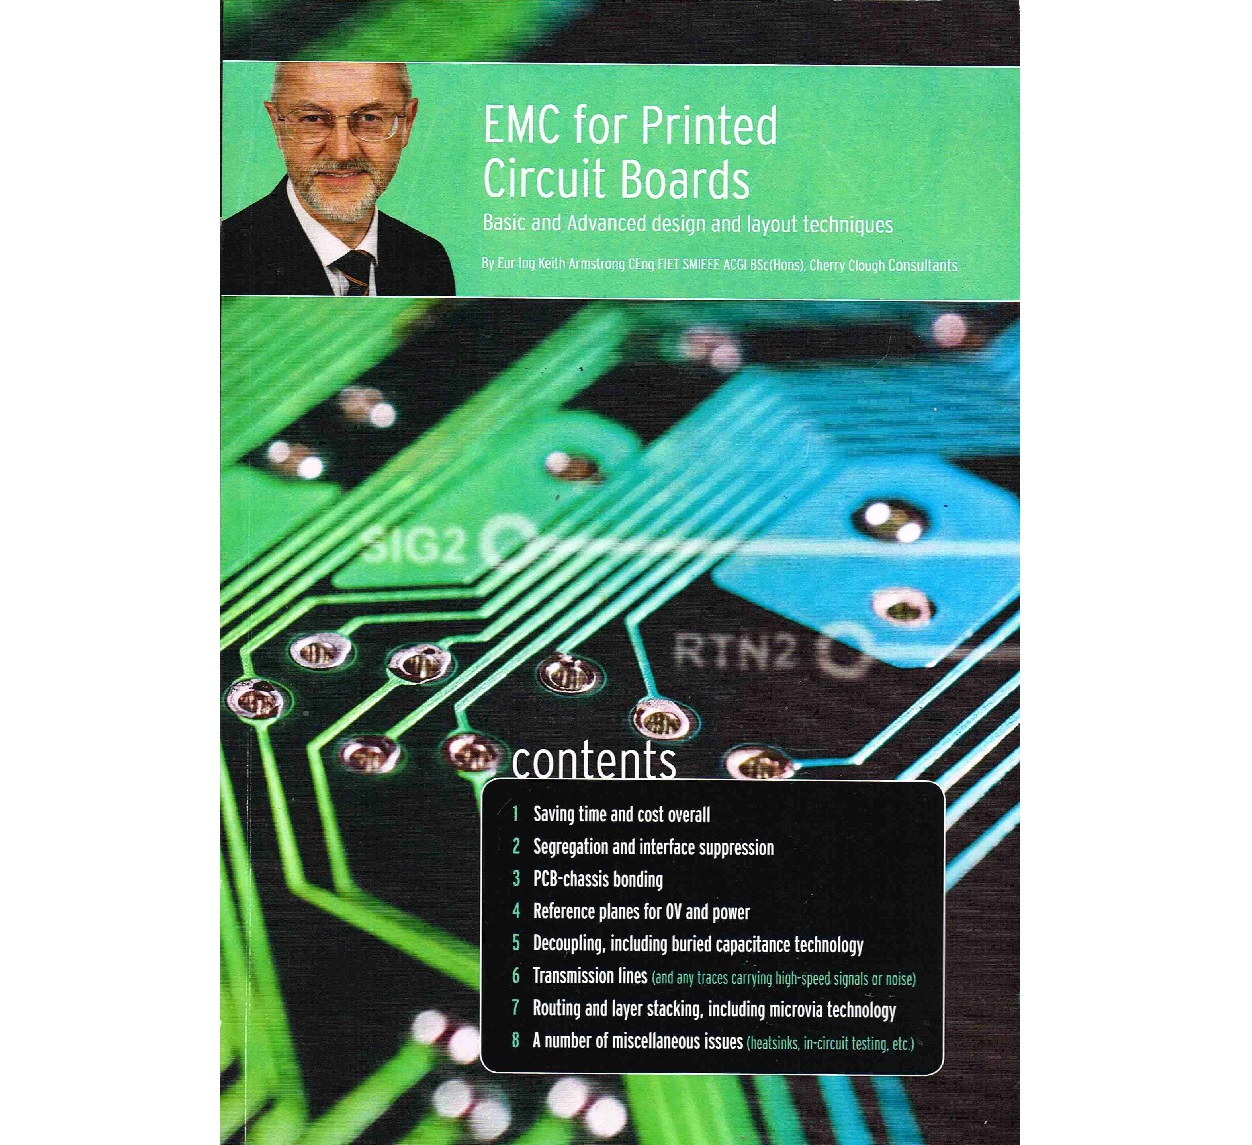 EMC for Printed Circuit Boards - Keith Armstrong